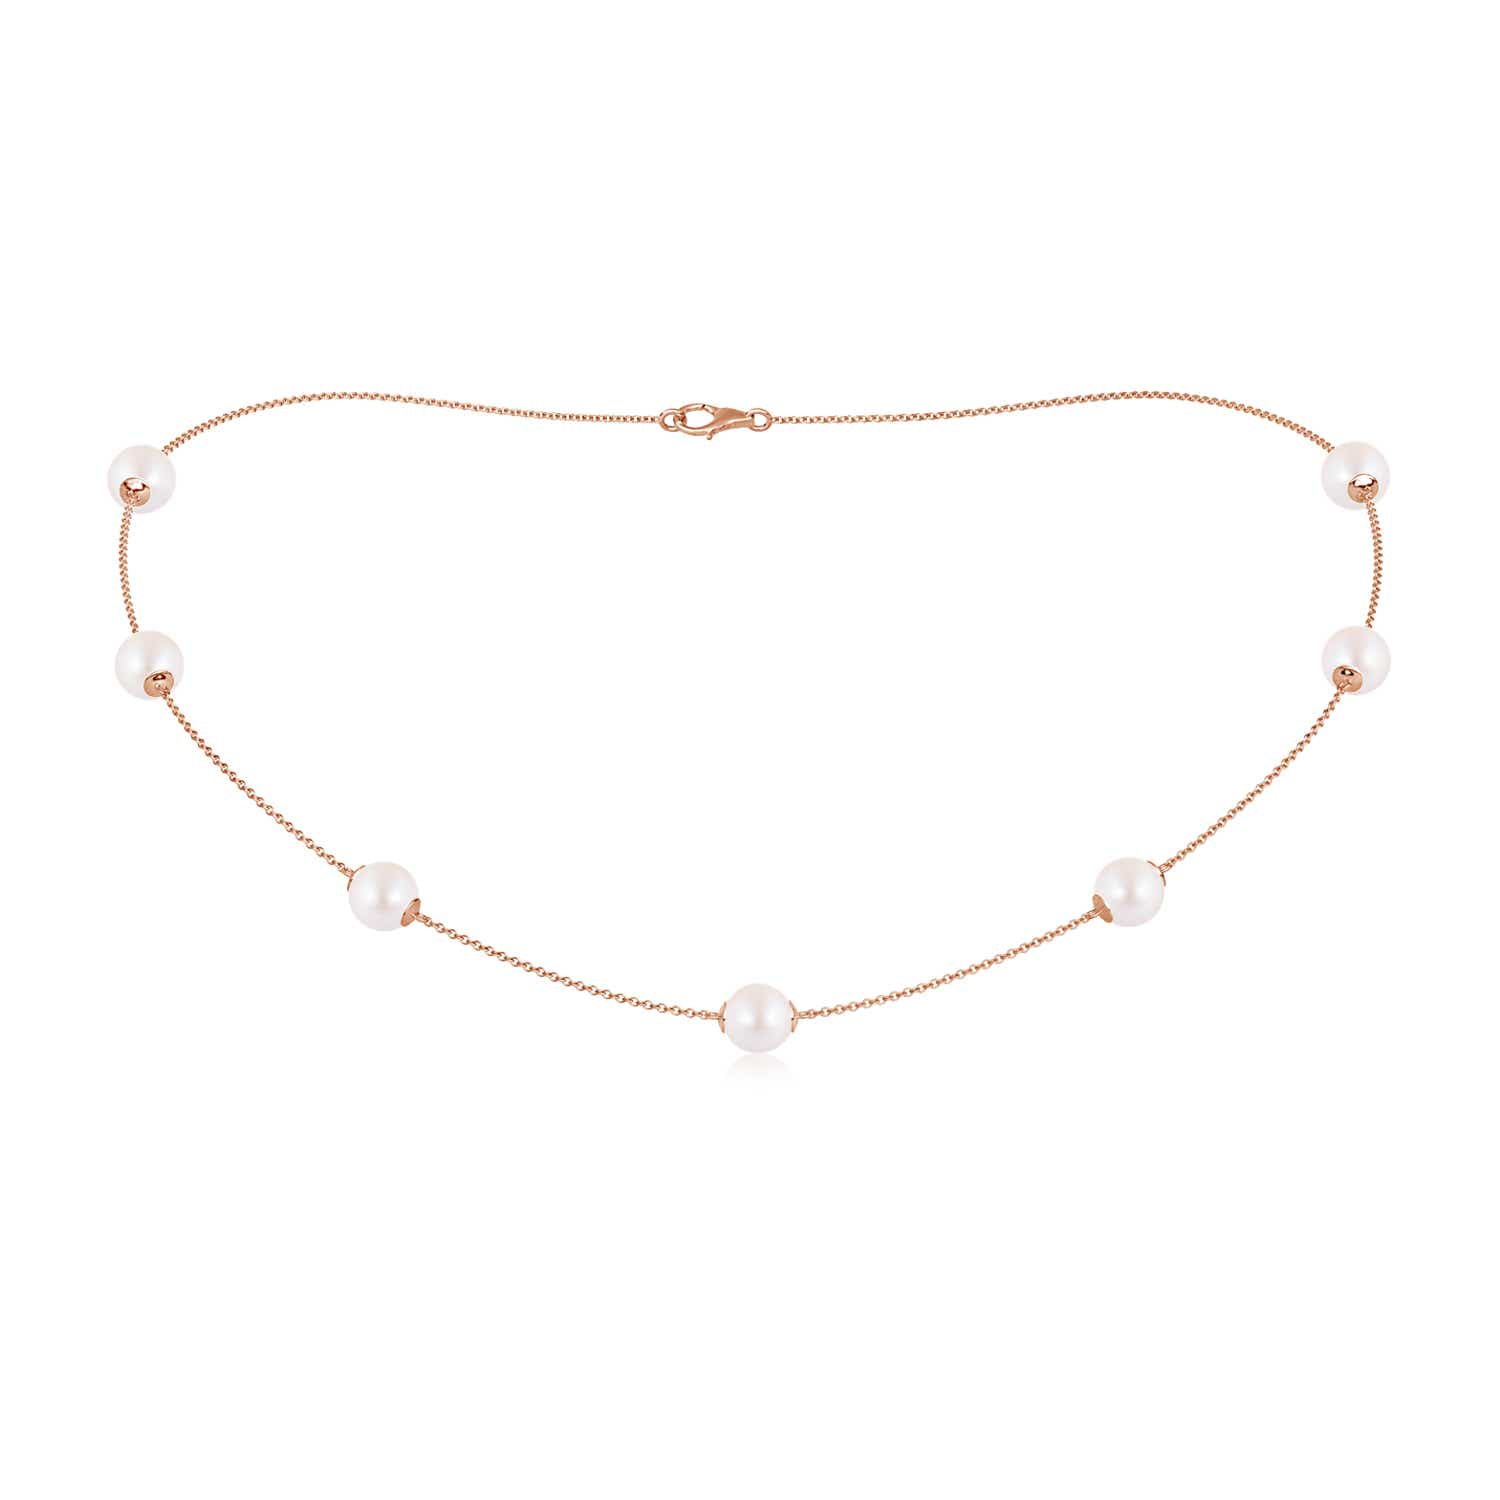 16 Akoya Cultured Pearl Station Necklace